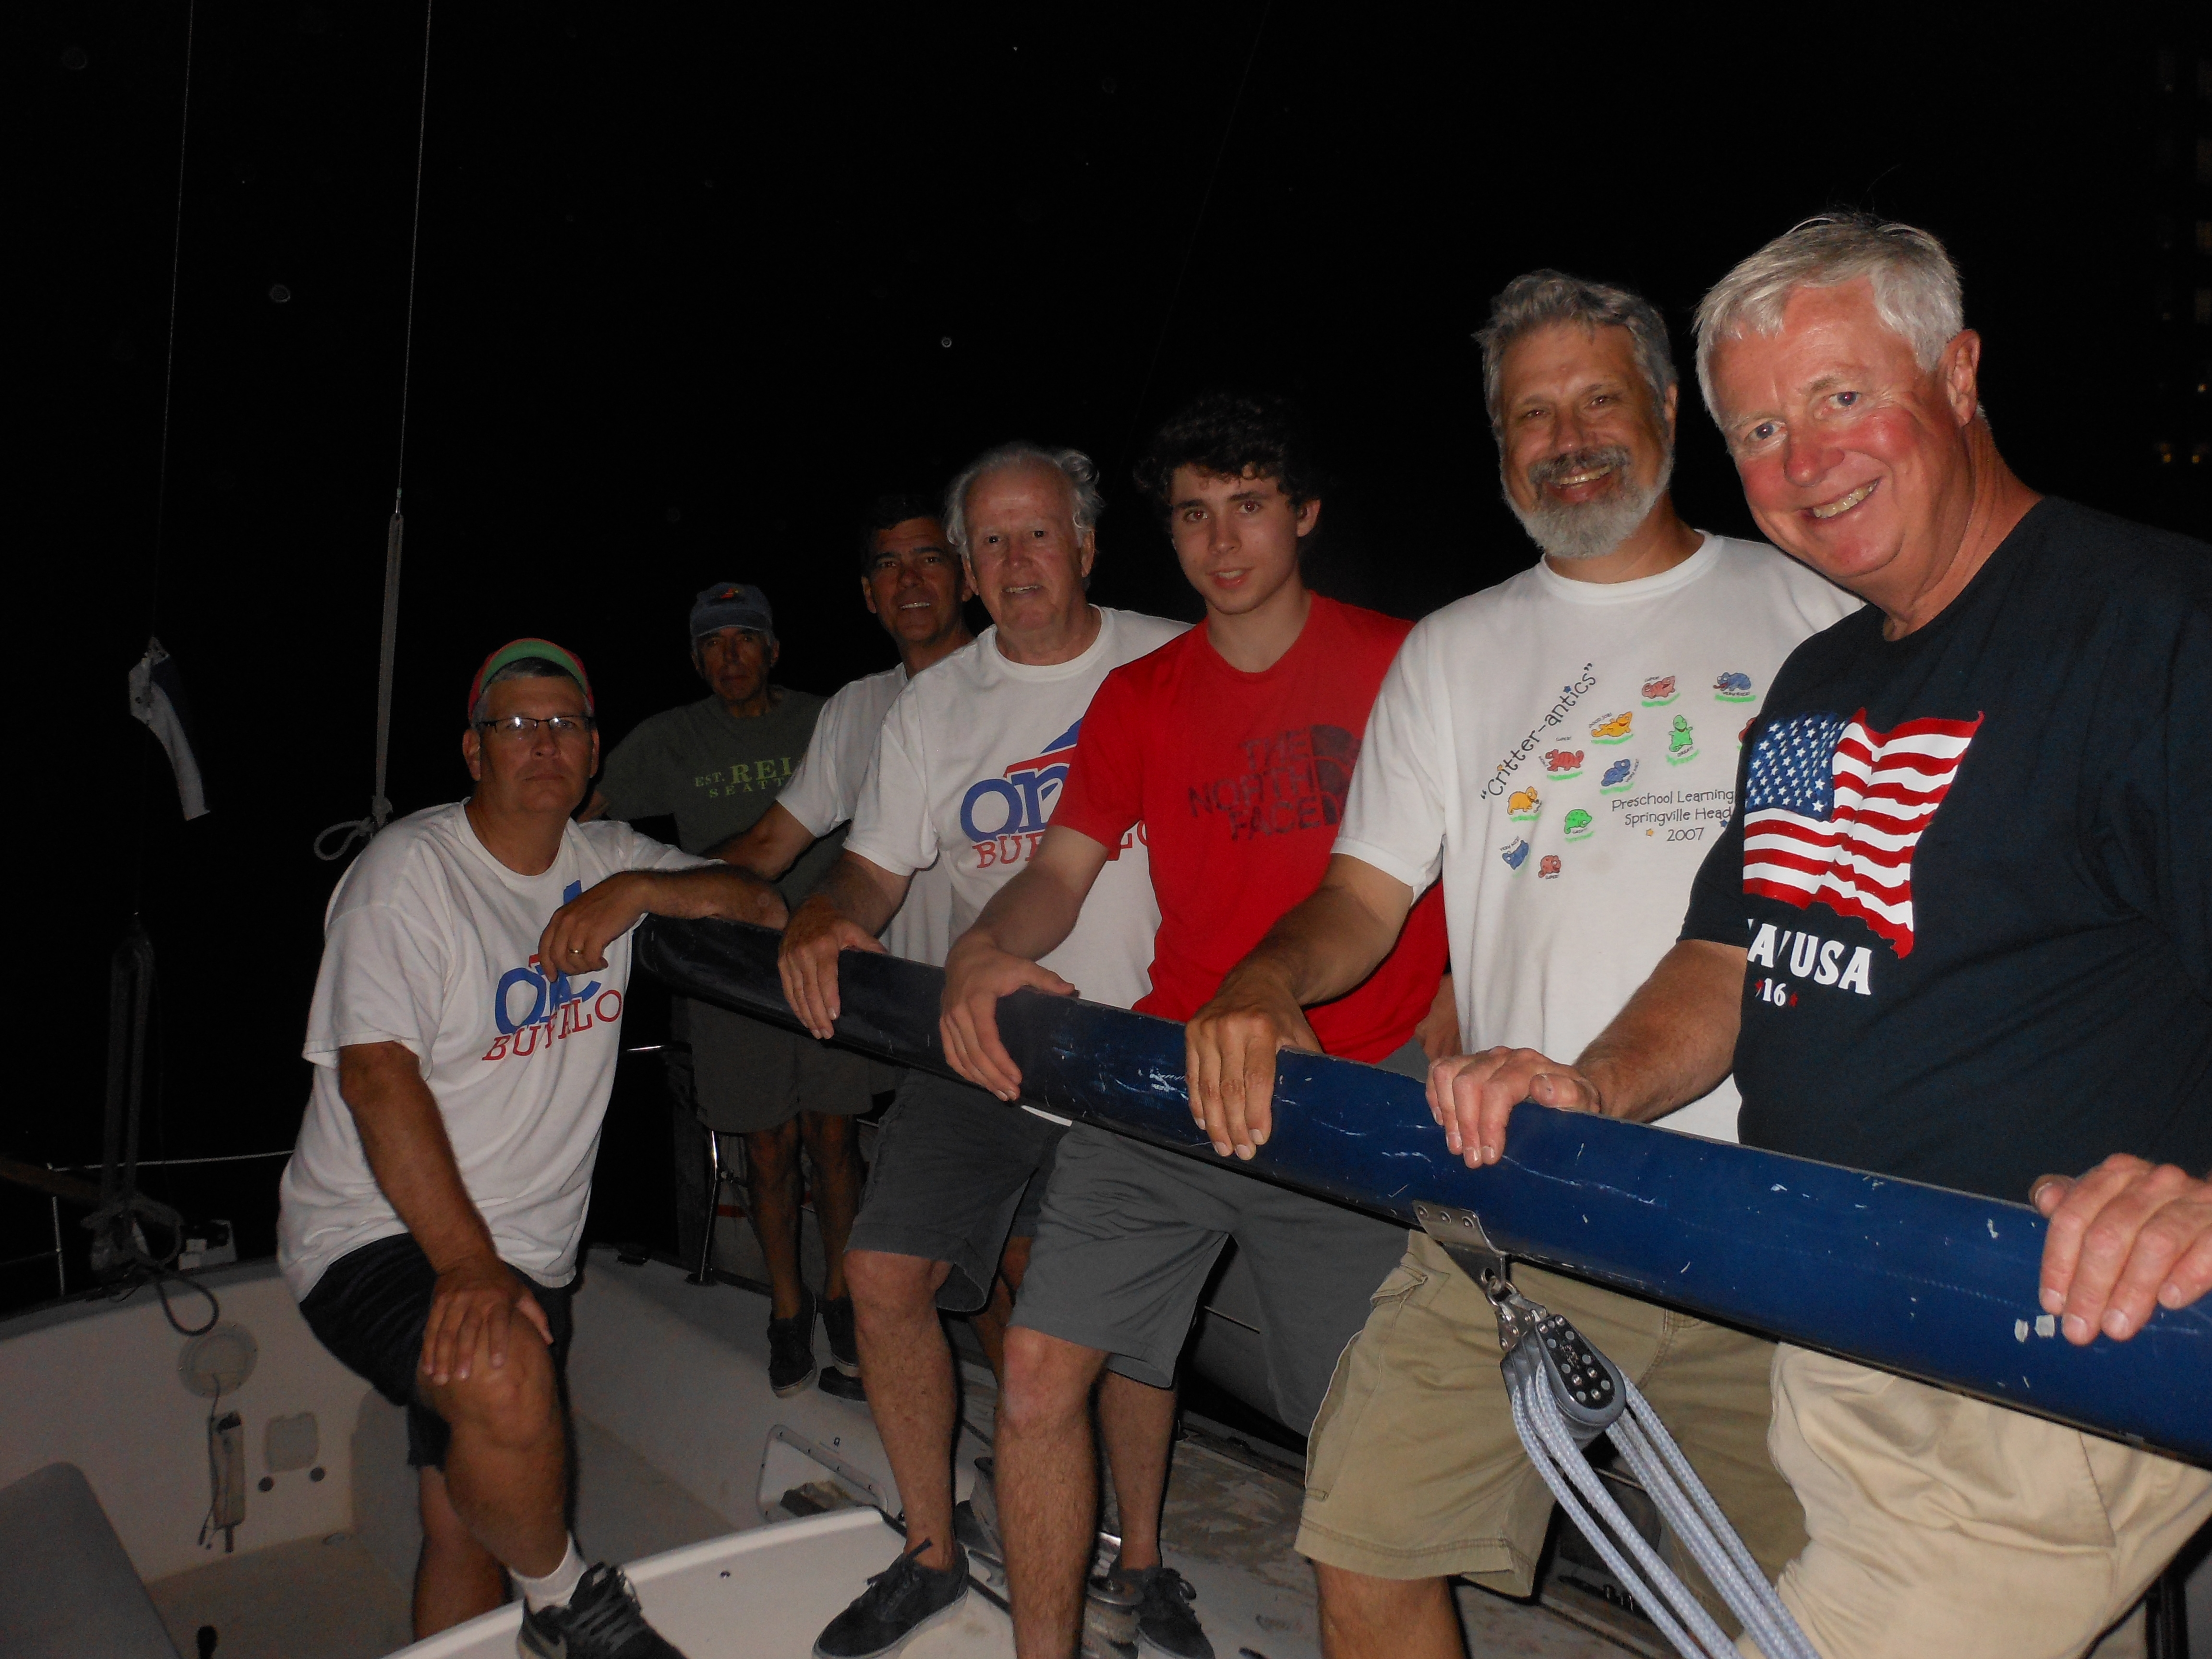 Capt. Jack Mathias (at right) with his sailing crew after a Wednesday-night competition out of RCR Yachts at Skyway Marina. Holding the boom, from the left, are Greg Hylkema, Ken Kahn, Tom LeBuhn, Tim O'Brien, Patrick Hylkema, Bill Lewis and Mathias